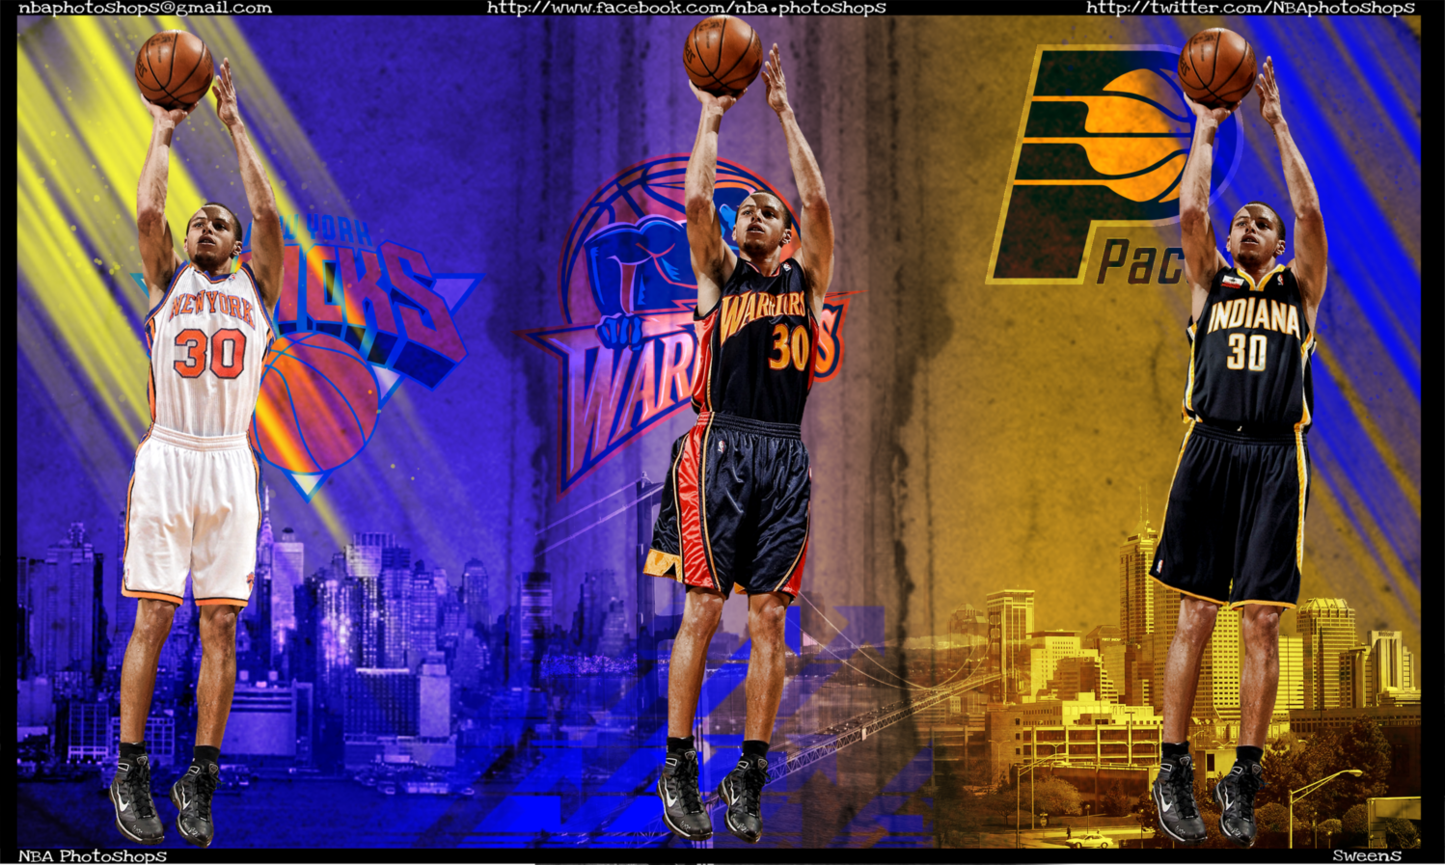 Stephen Curry Human Torch Wallpaper Posterizes Nba HD Walls Find 1445x865